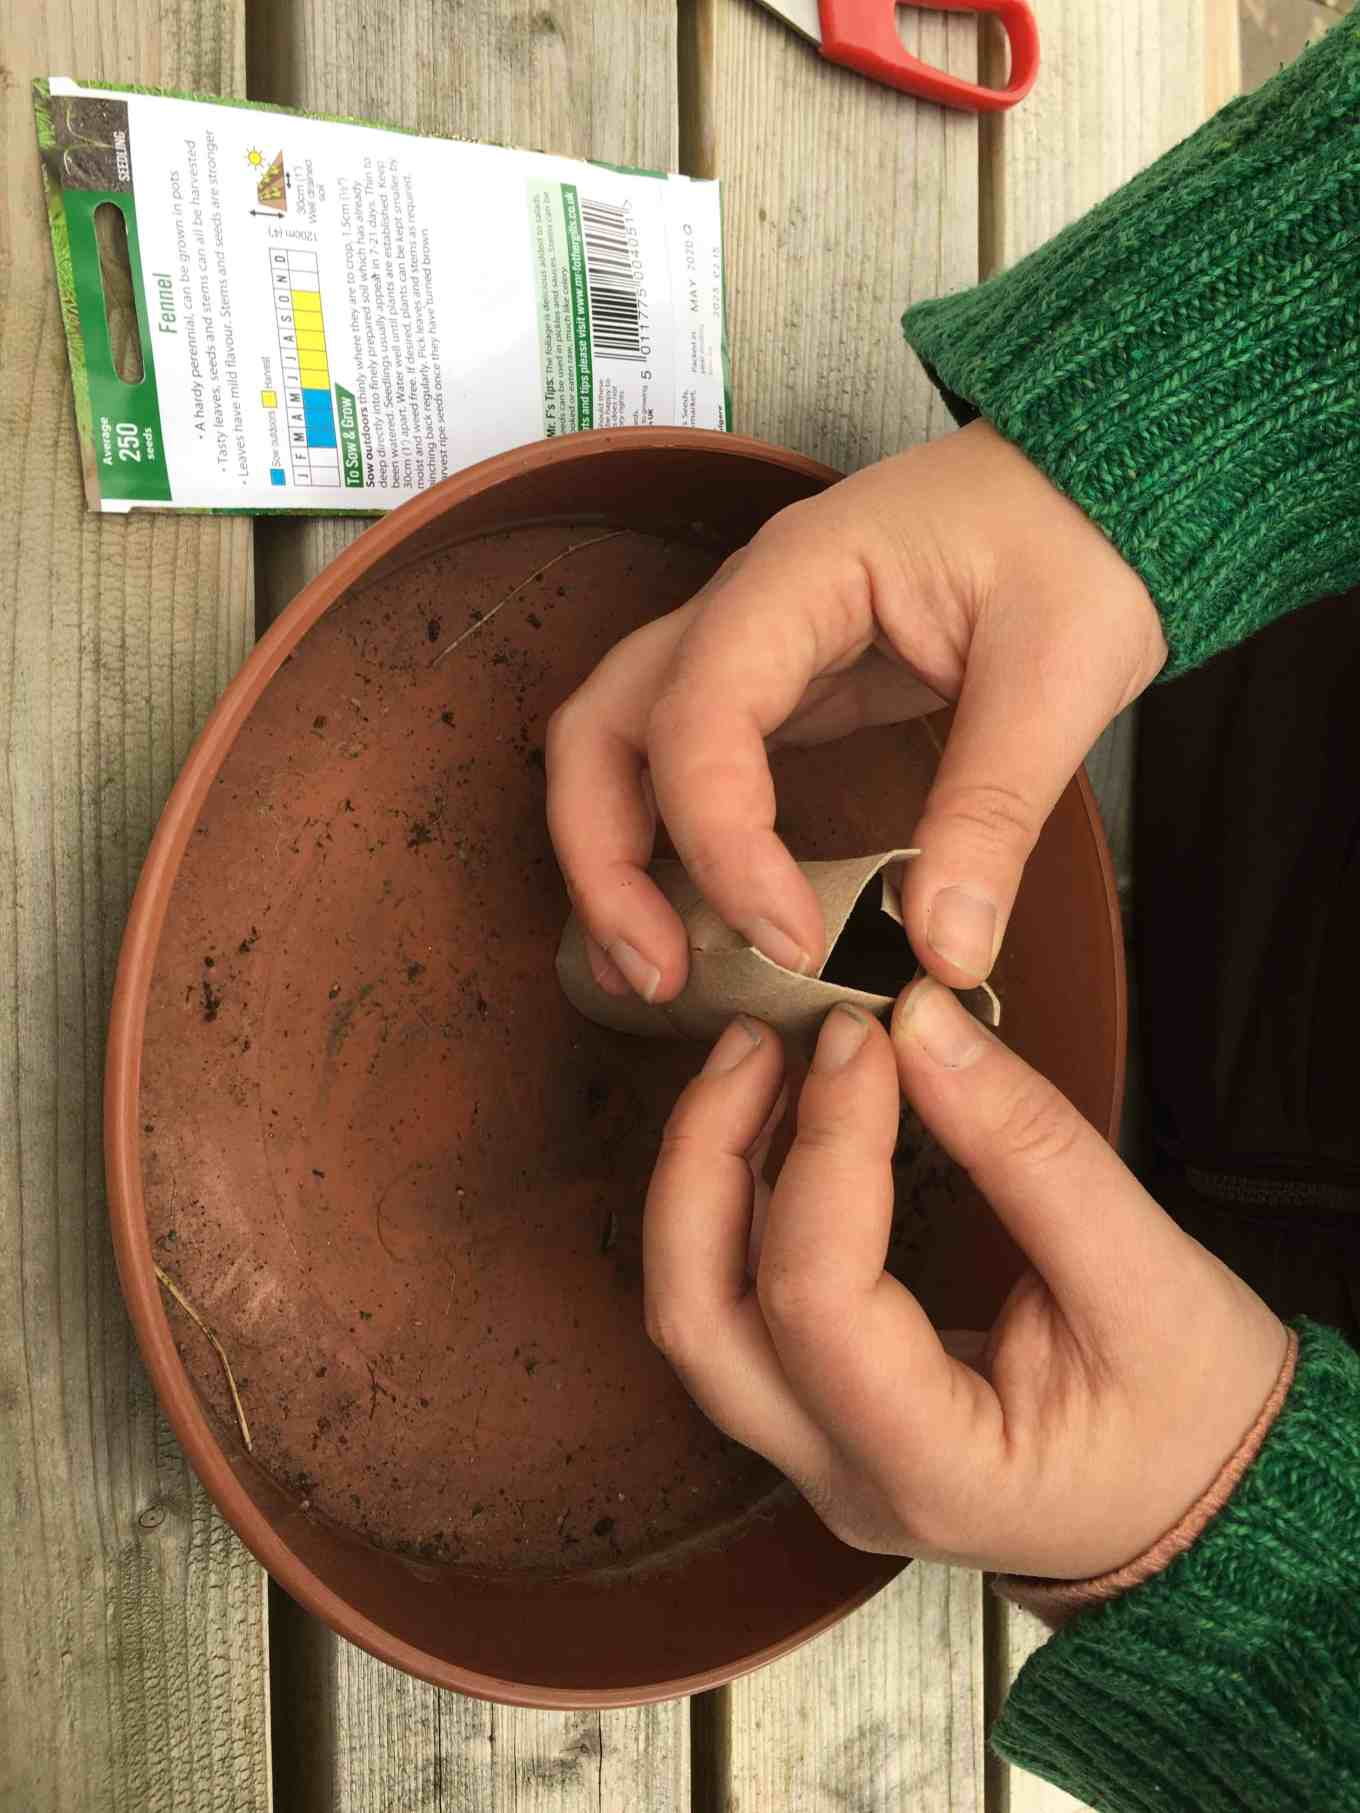 biodegradable seed planters mean delicate roots do not have to be disturbed